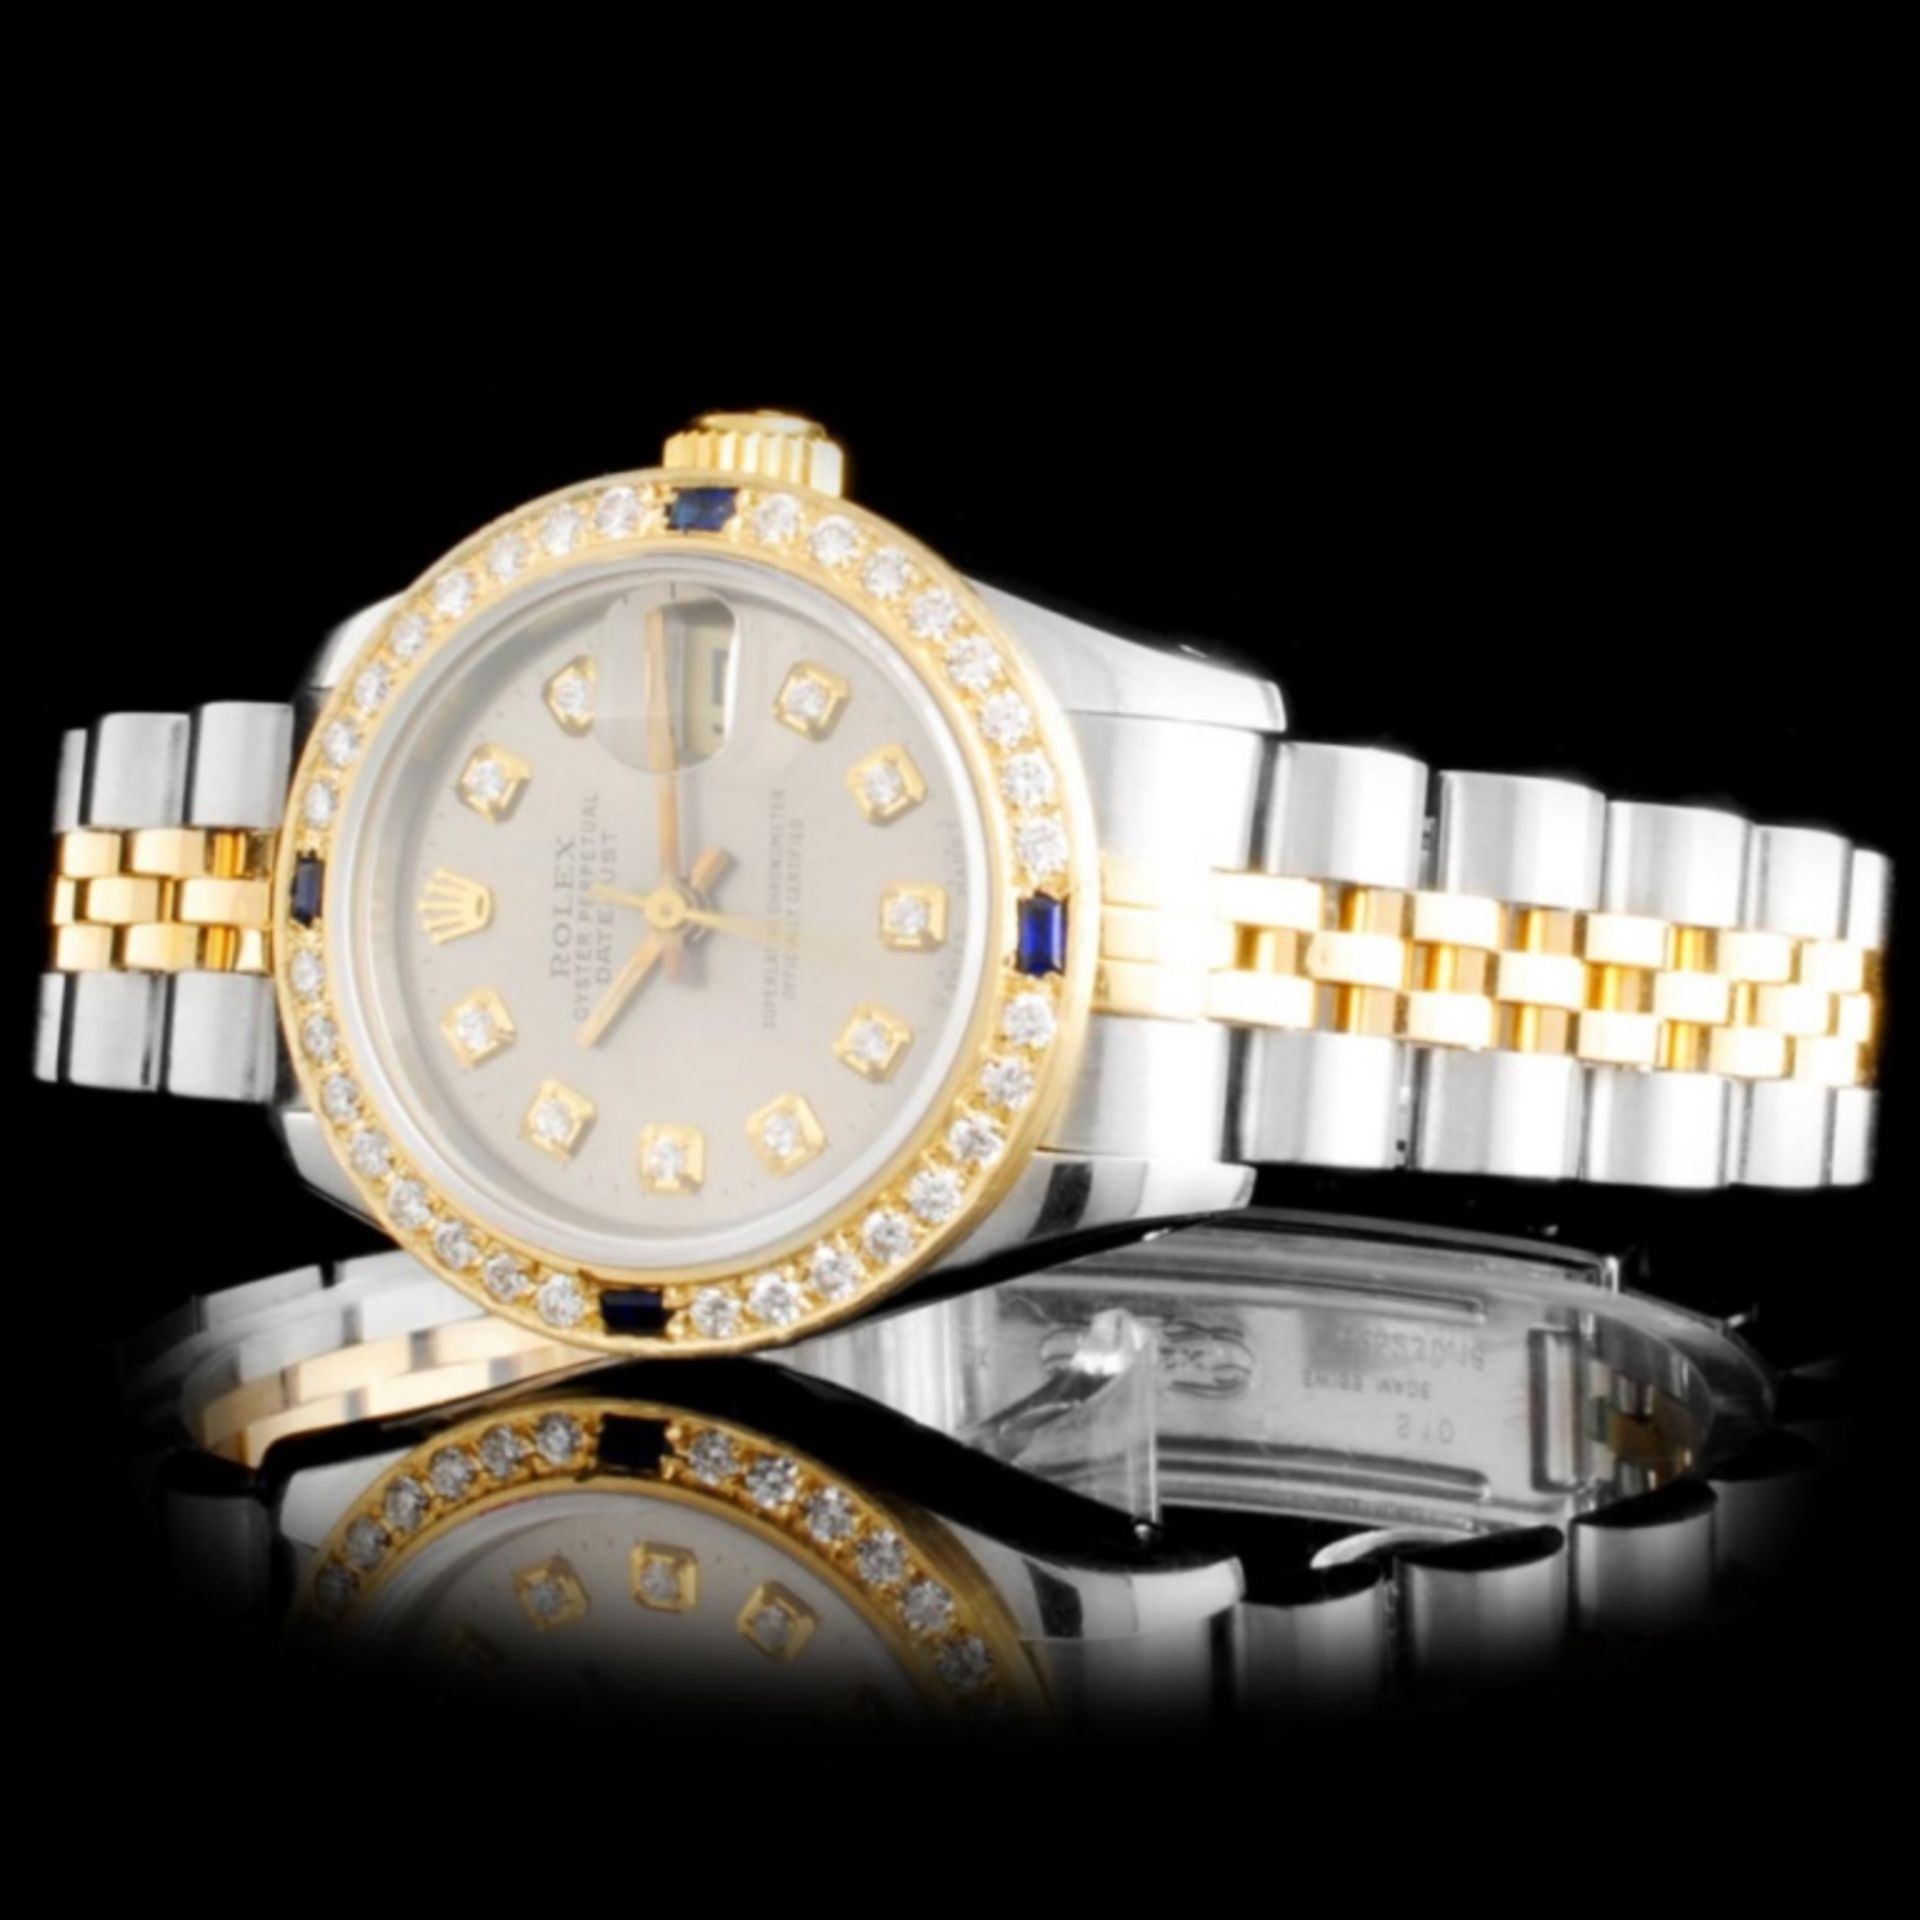 Rolex YG/SS DateJust Ladies Diamond Watch - Image 2 of 5